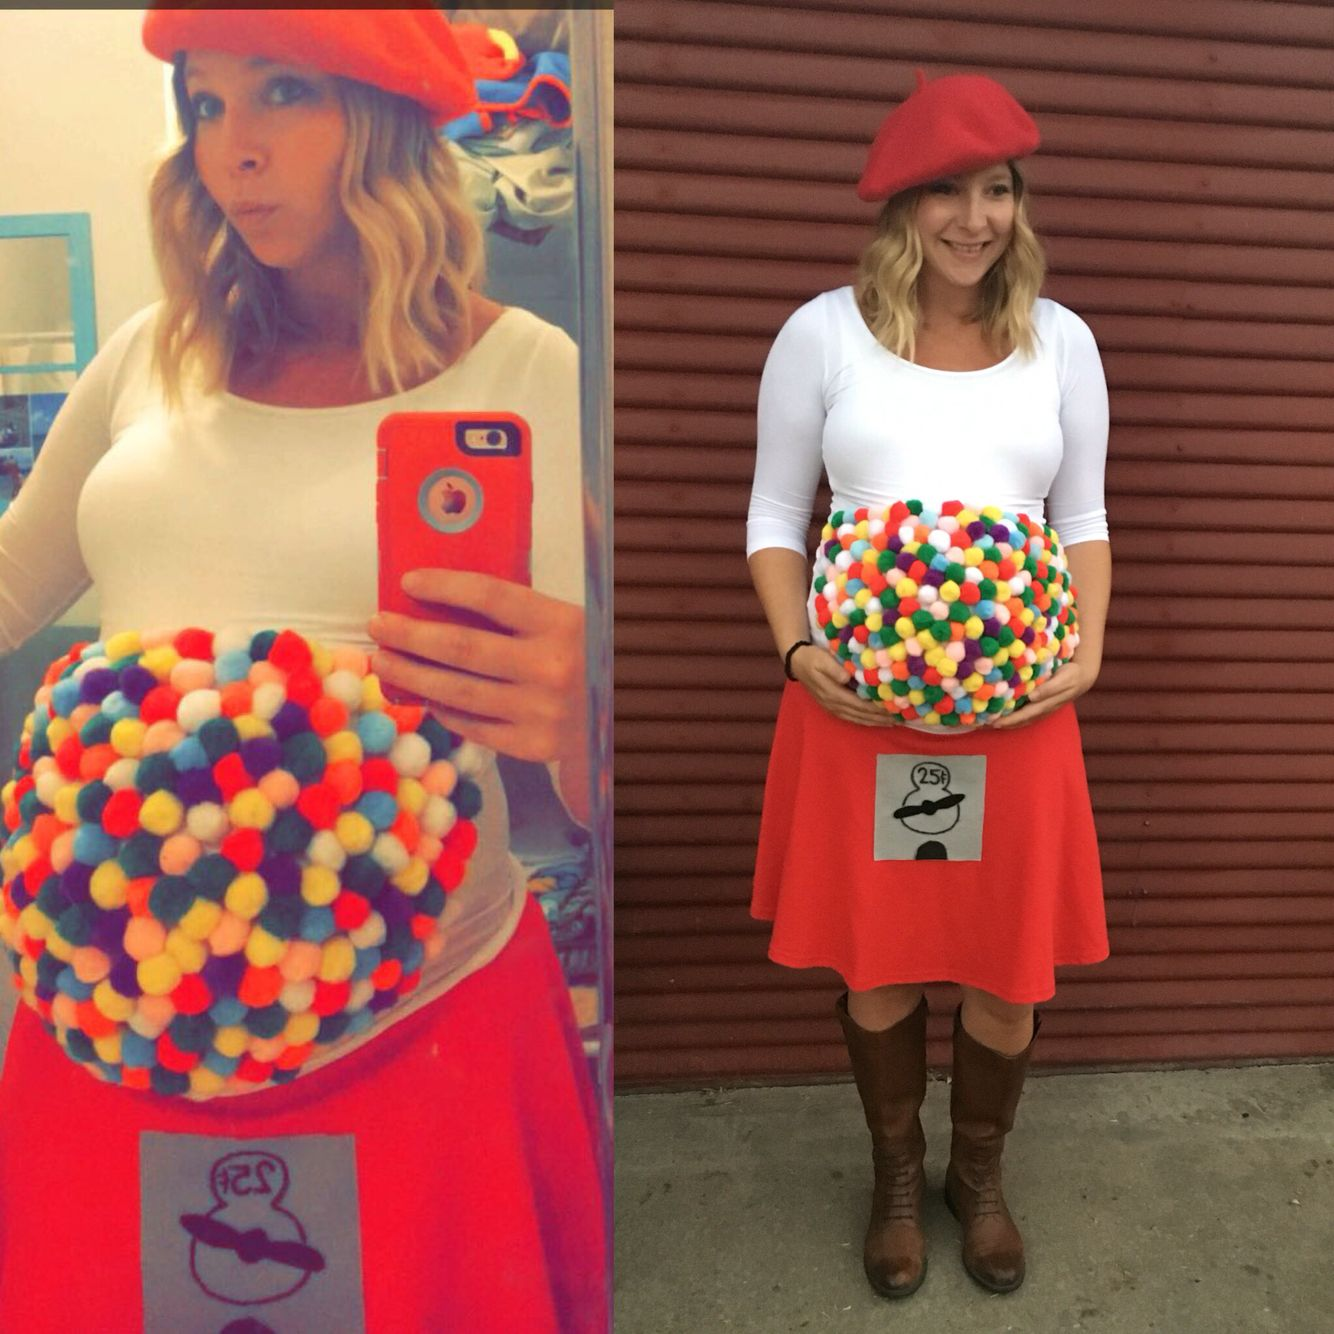 Halloween Costume Ideas For Pregnant Ladies.Pregnant Costumes Costumes Pregnant Halloween Costumes